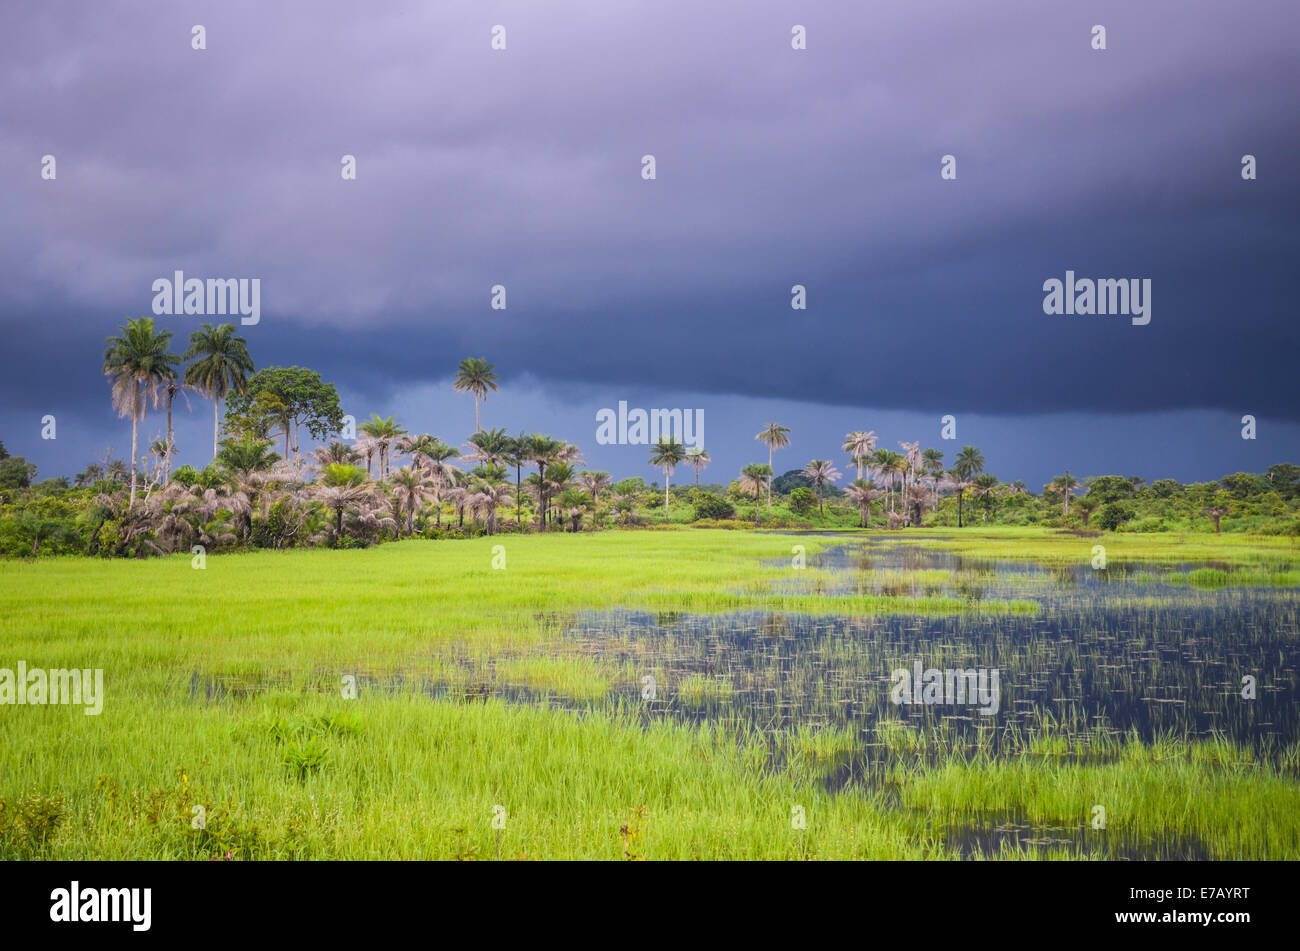 Threatening sky during the rainy season in Sierra Leone, West Africa - Stock Image